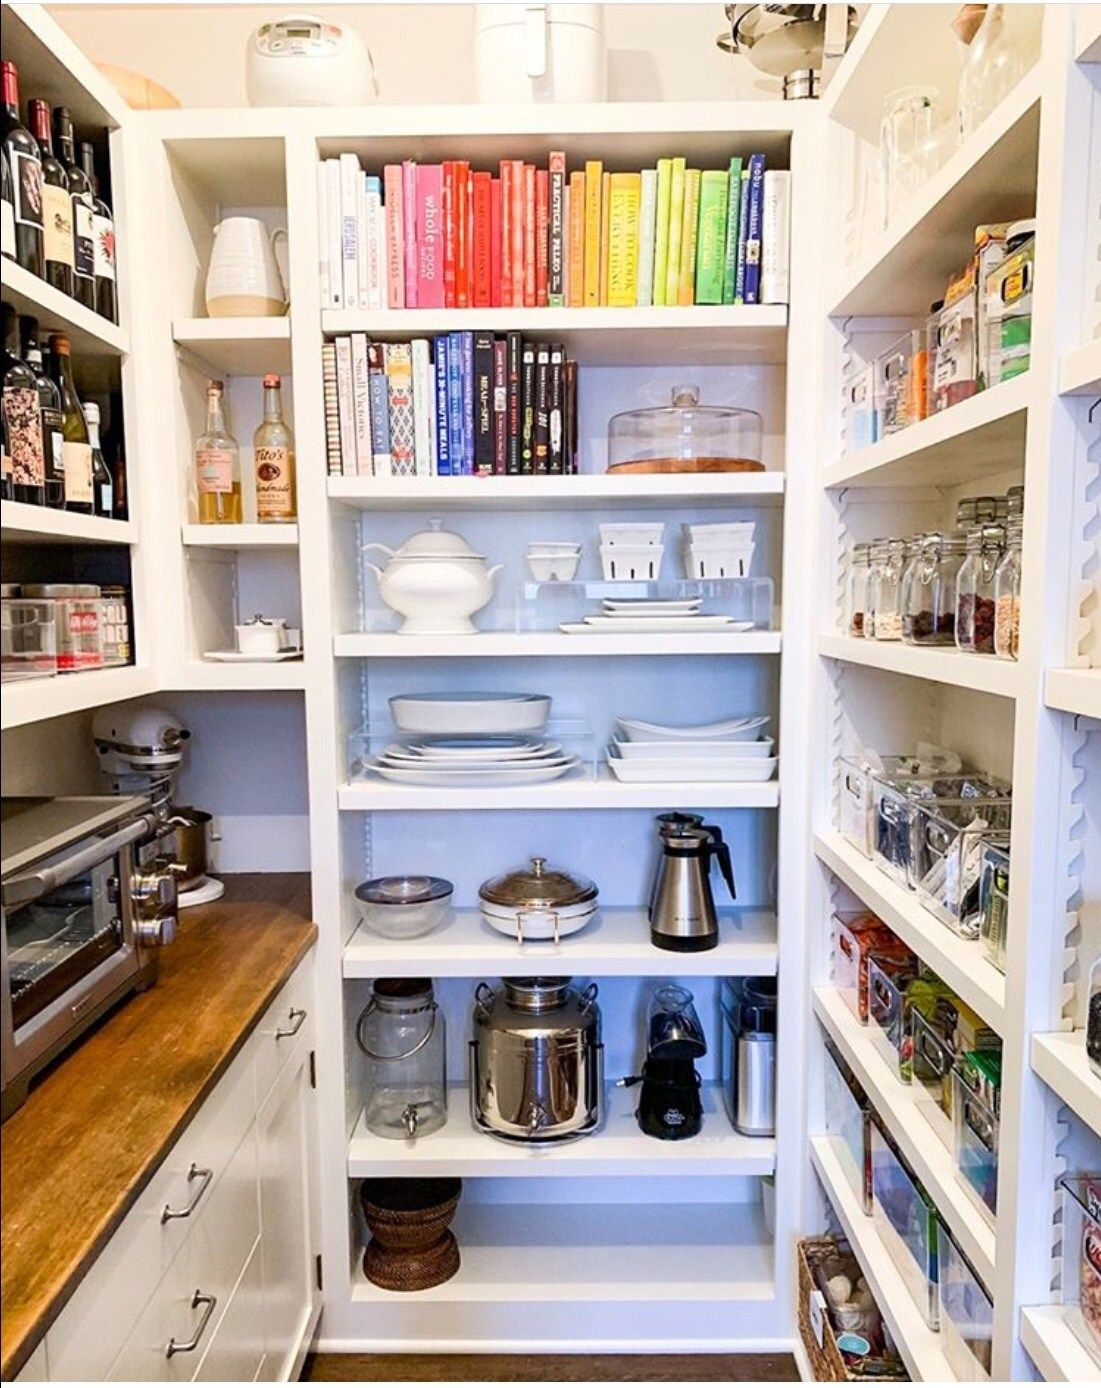 20+ Clever Pantry Organization Ideas - The Wonder Cottage #pantryorganizationideas